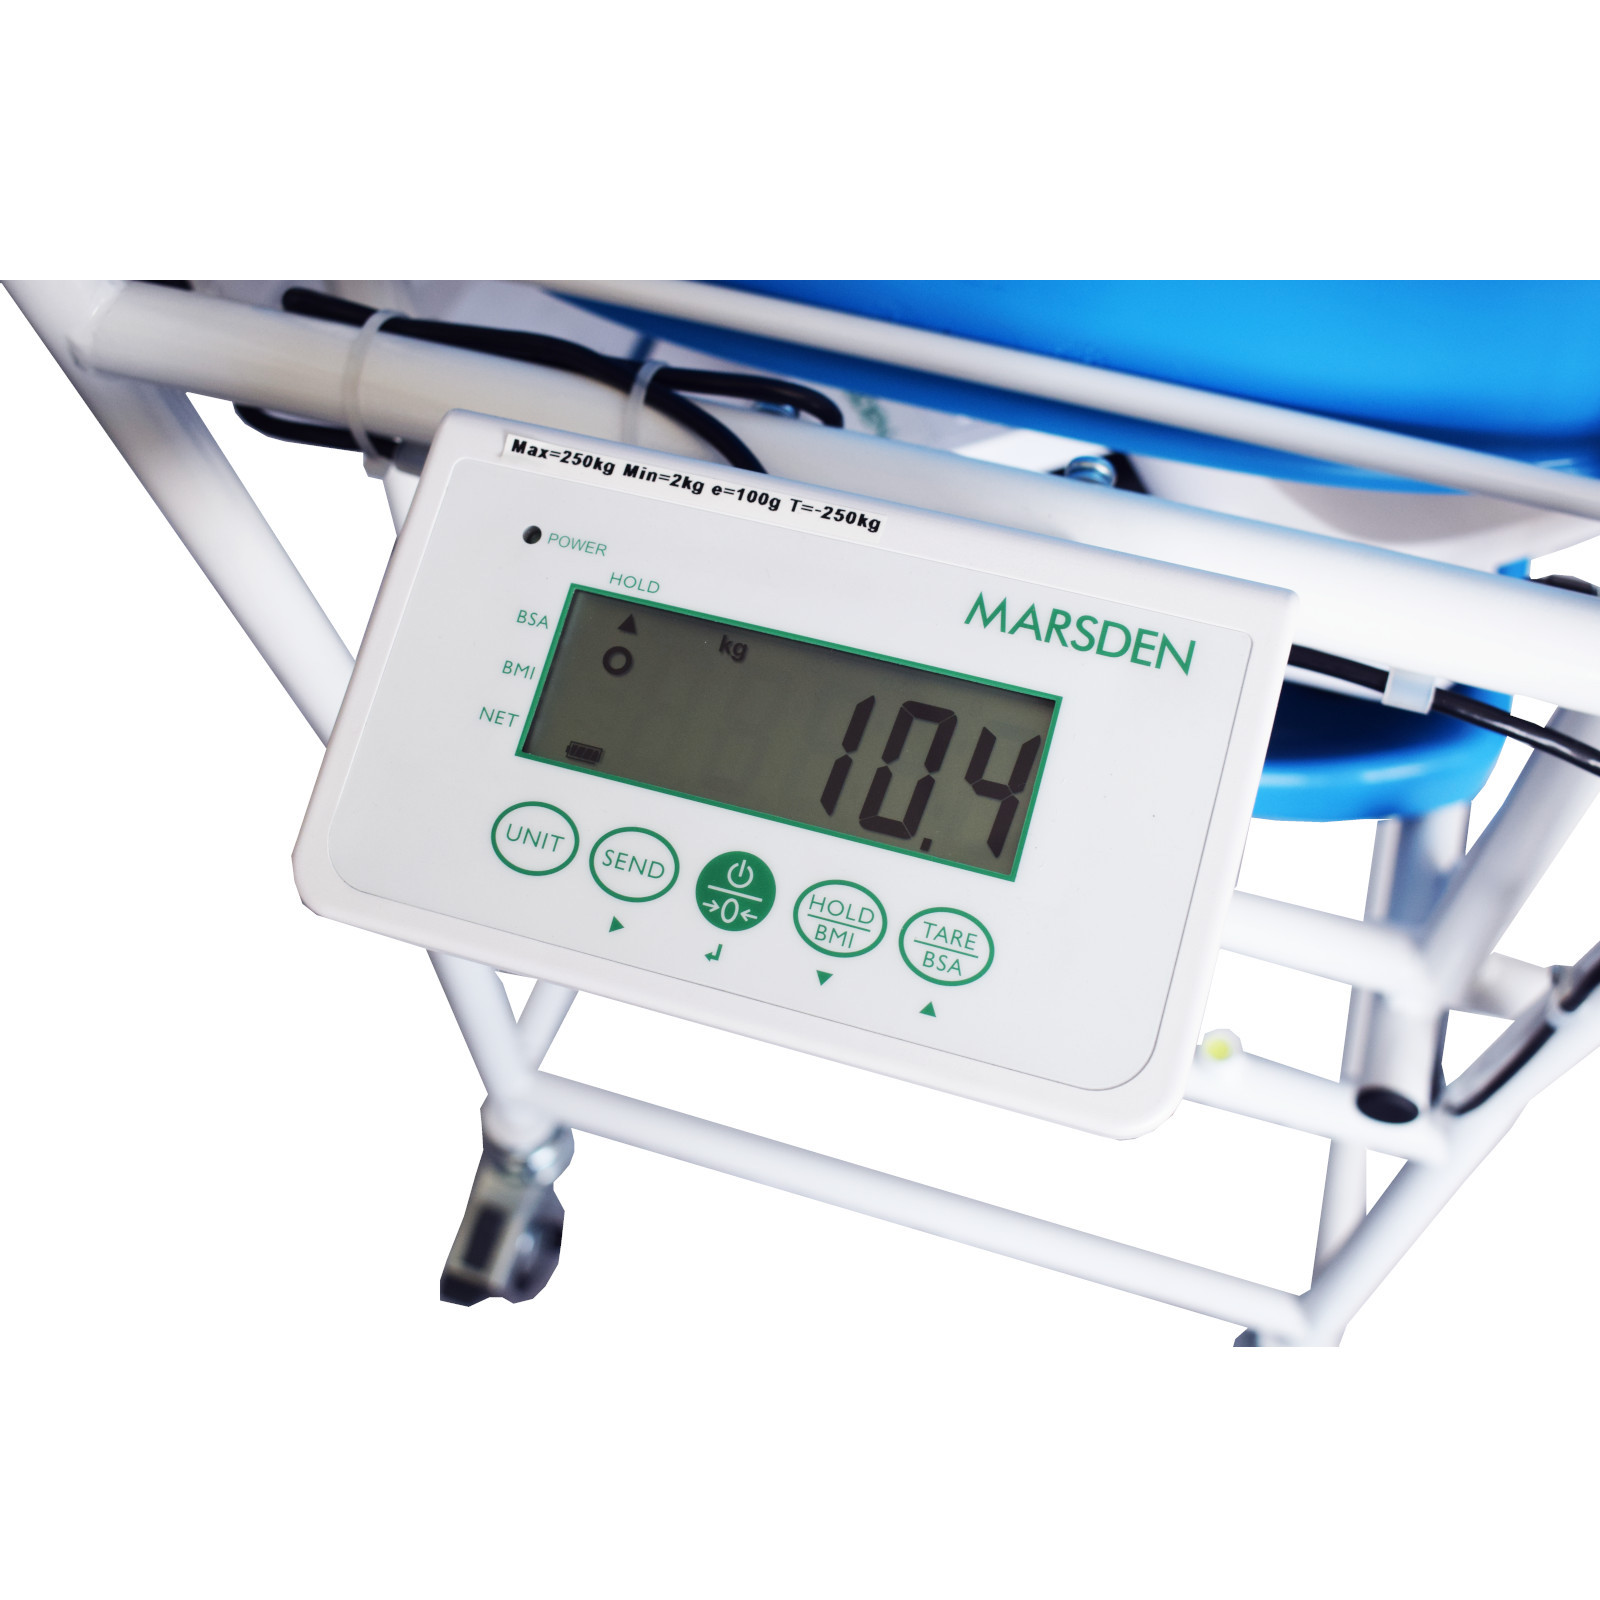 MARSDEN M-225 | weighingscales.com